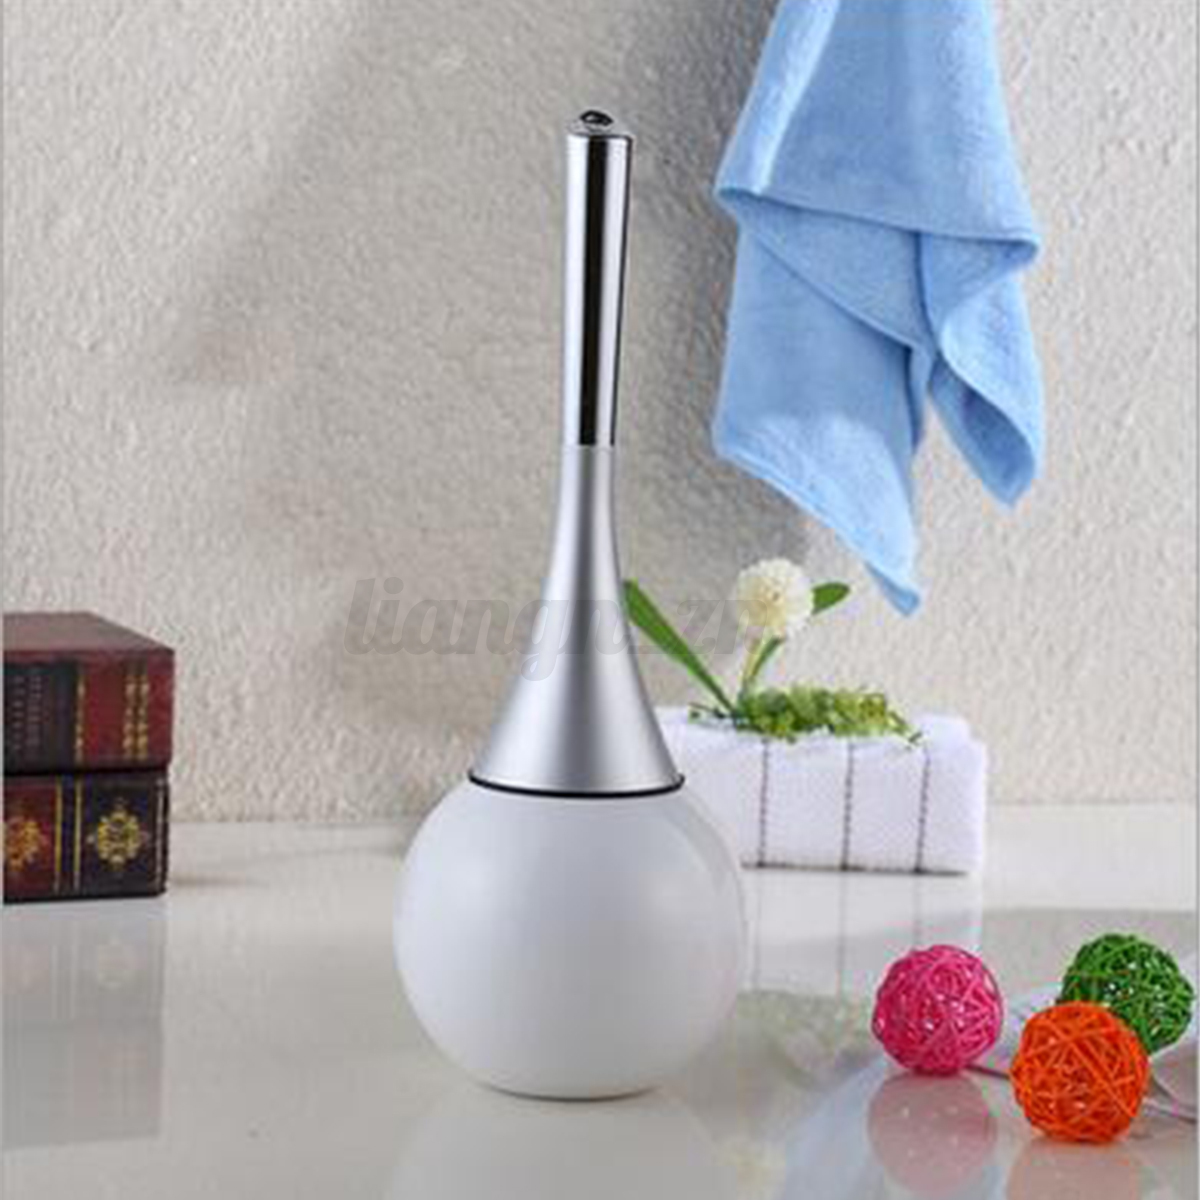 toilet brush brosse pour toilette bidet wc salle de bain nettoyage support inox ebay. Black Bedroom Furniture Sets. Home Design Ideas